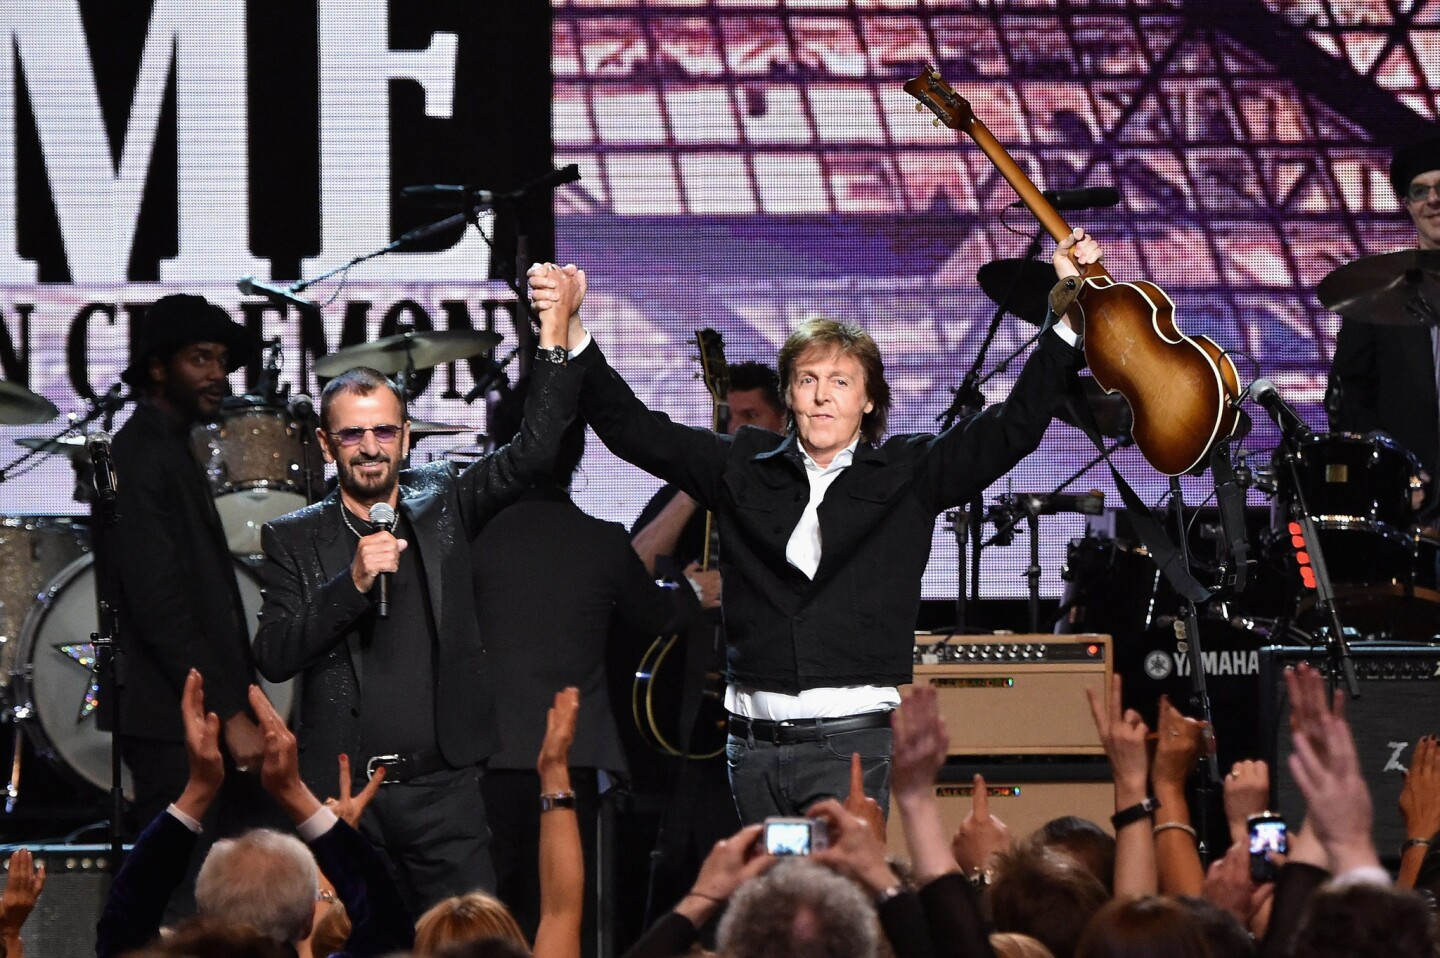 Inductee Ringo Starr, left, and Paul McCartney at the Rock and Roll Hall of Fame induction ceremony in Cleveland.